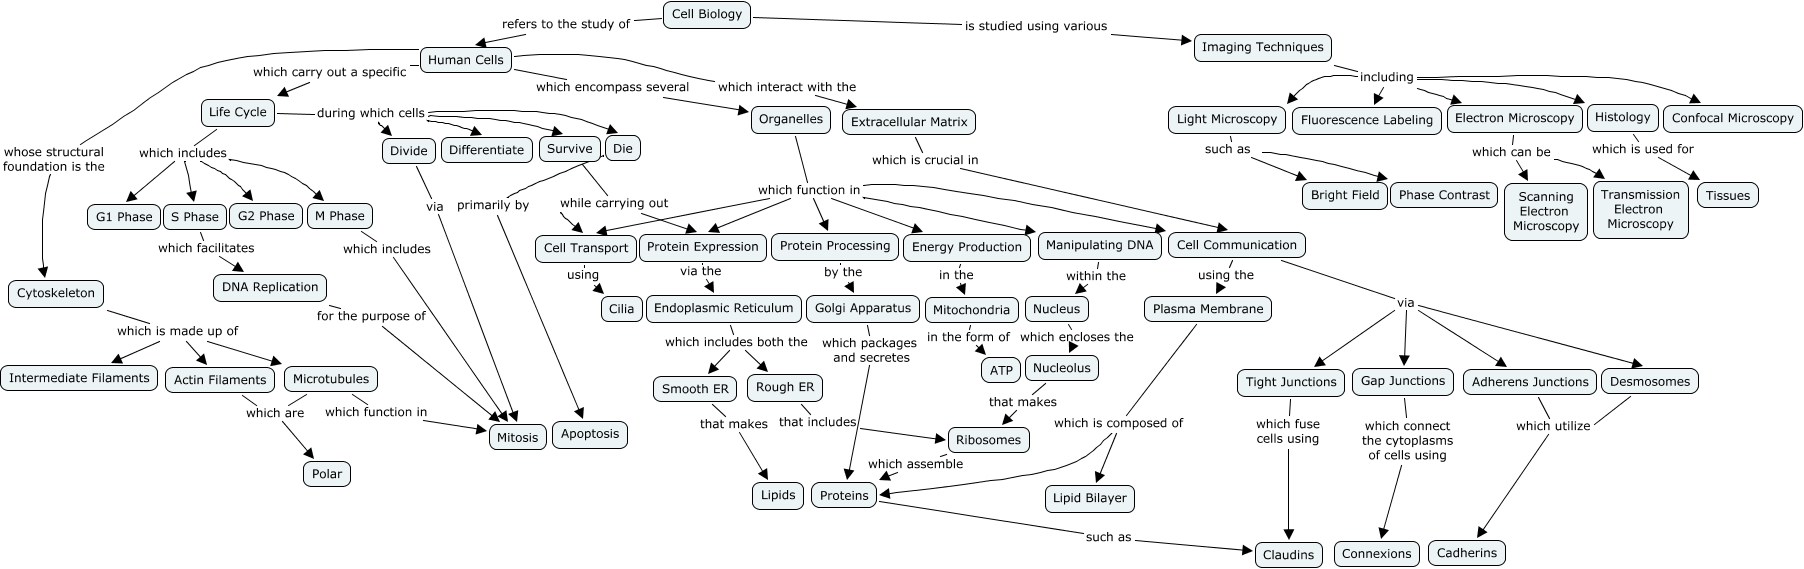 Cell Biology Concept Map   What are the key facets of cell biology?